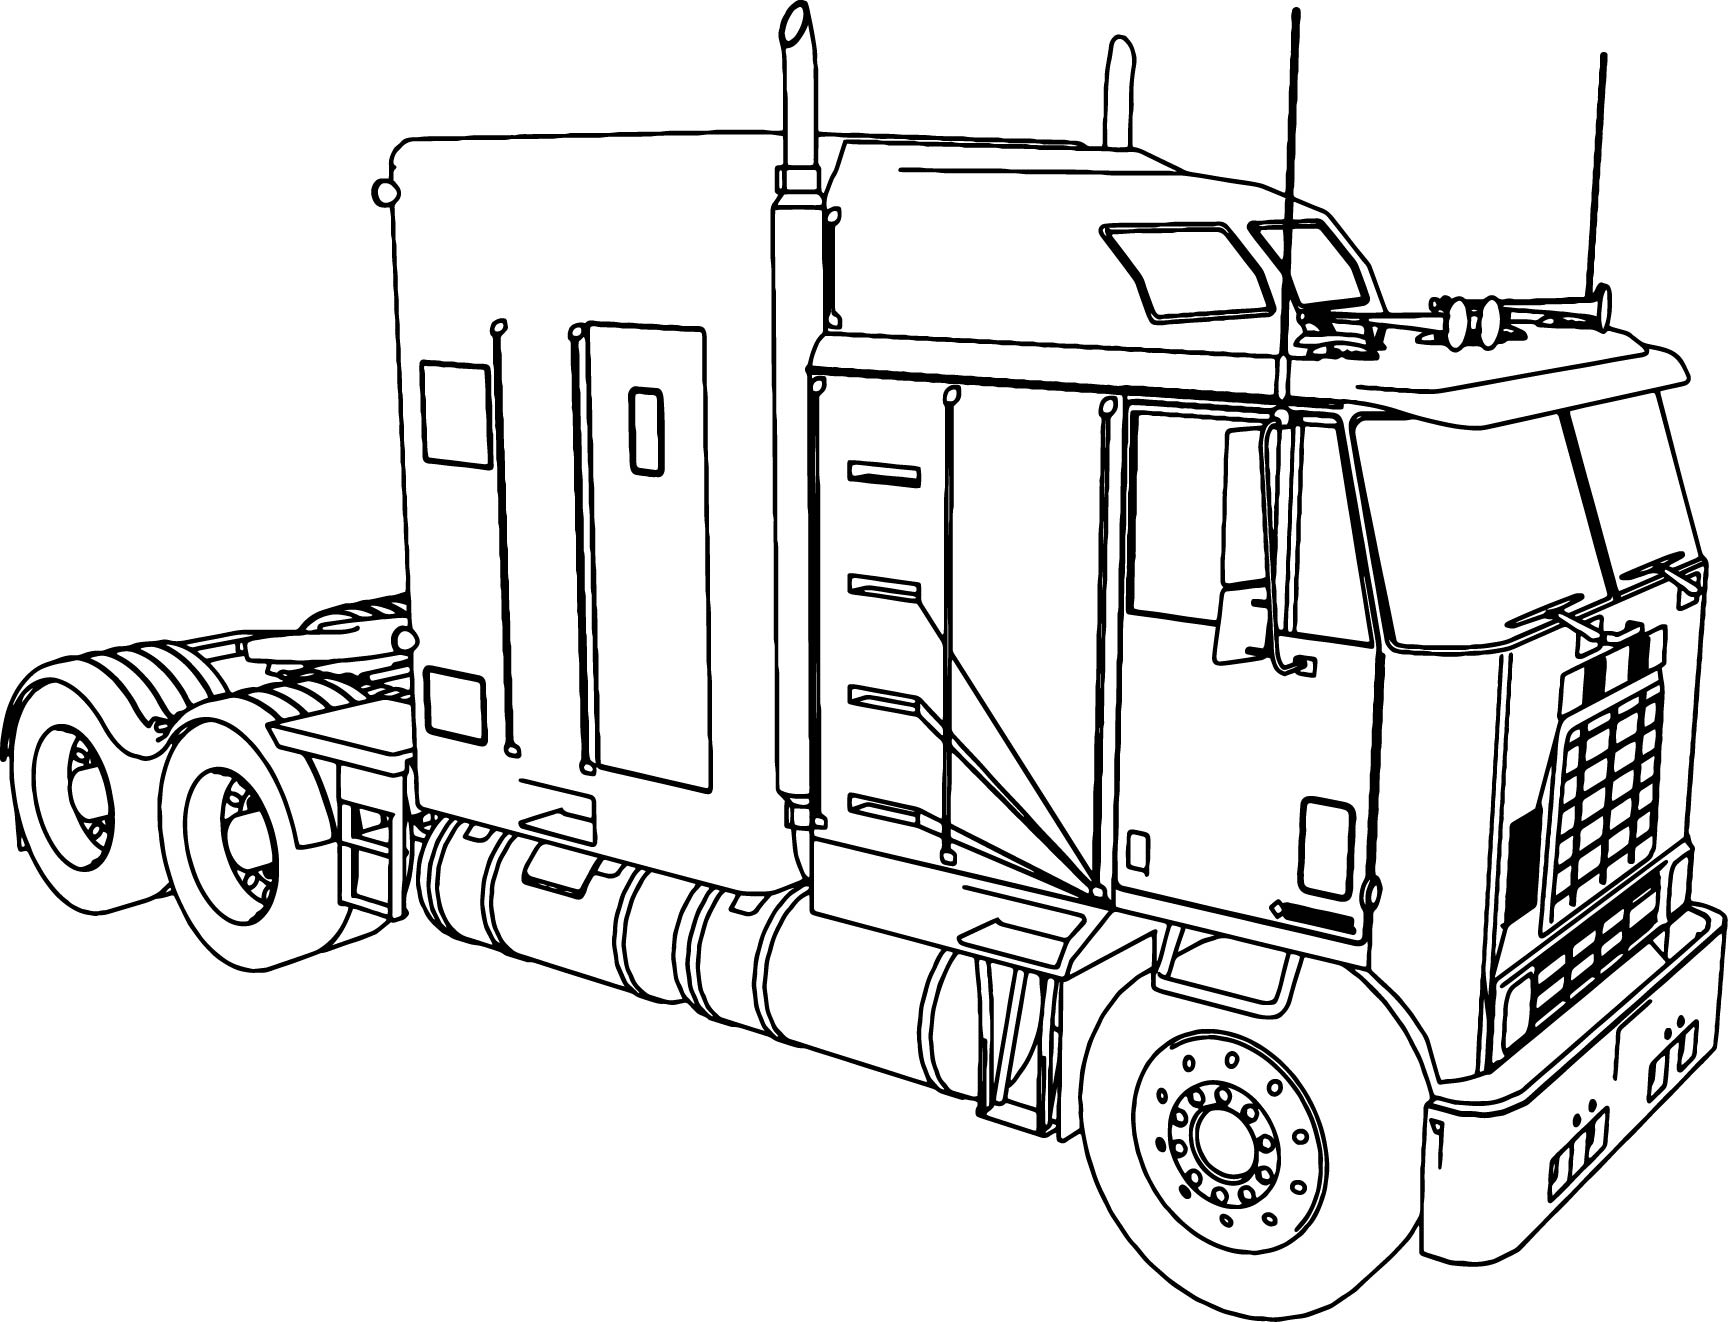 Freightliner Coloring Pages at GetDrawings.com | Free for personal ...